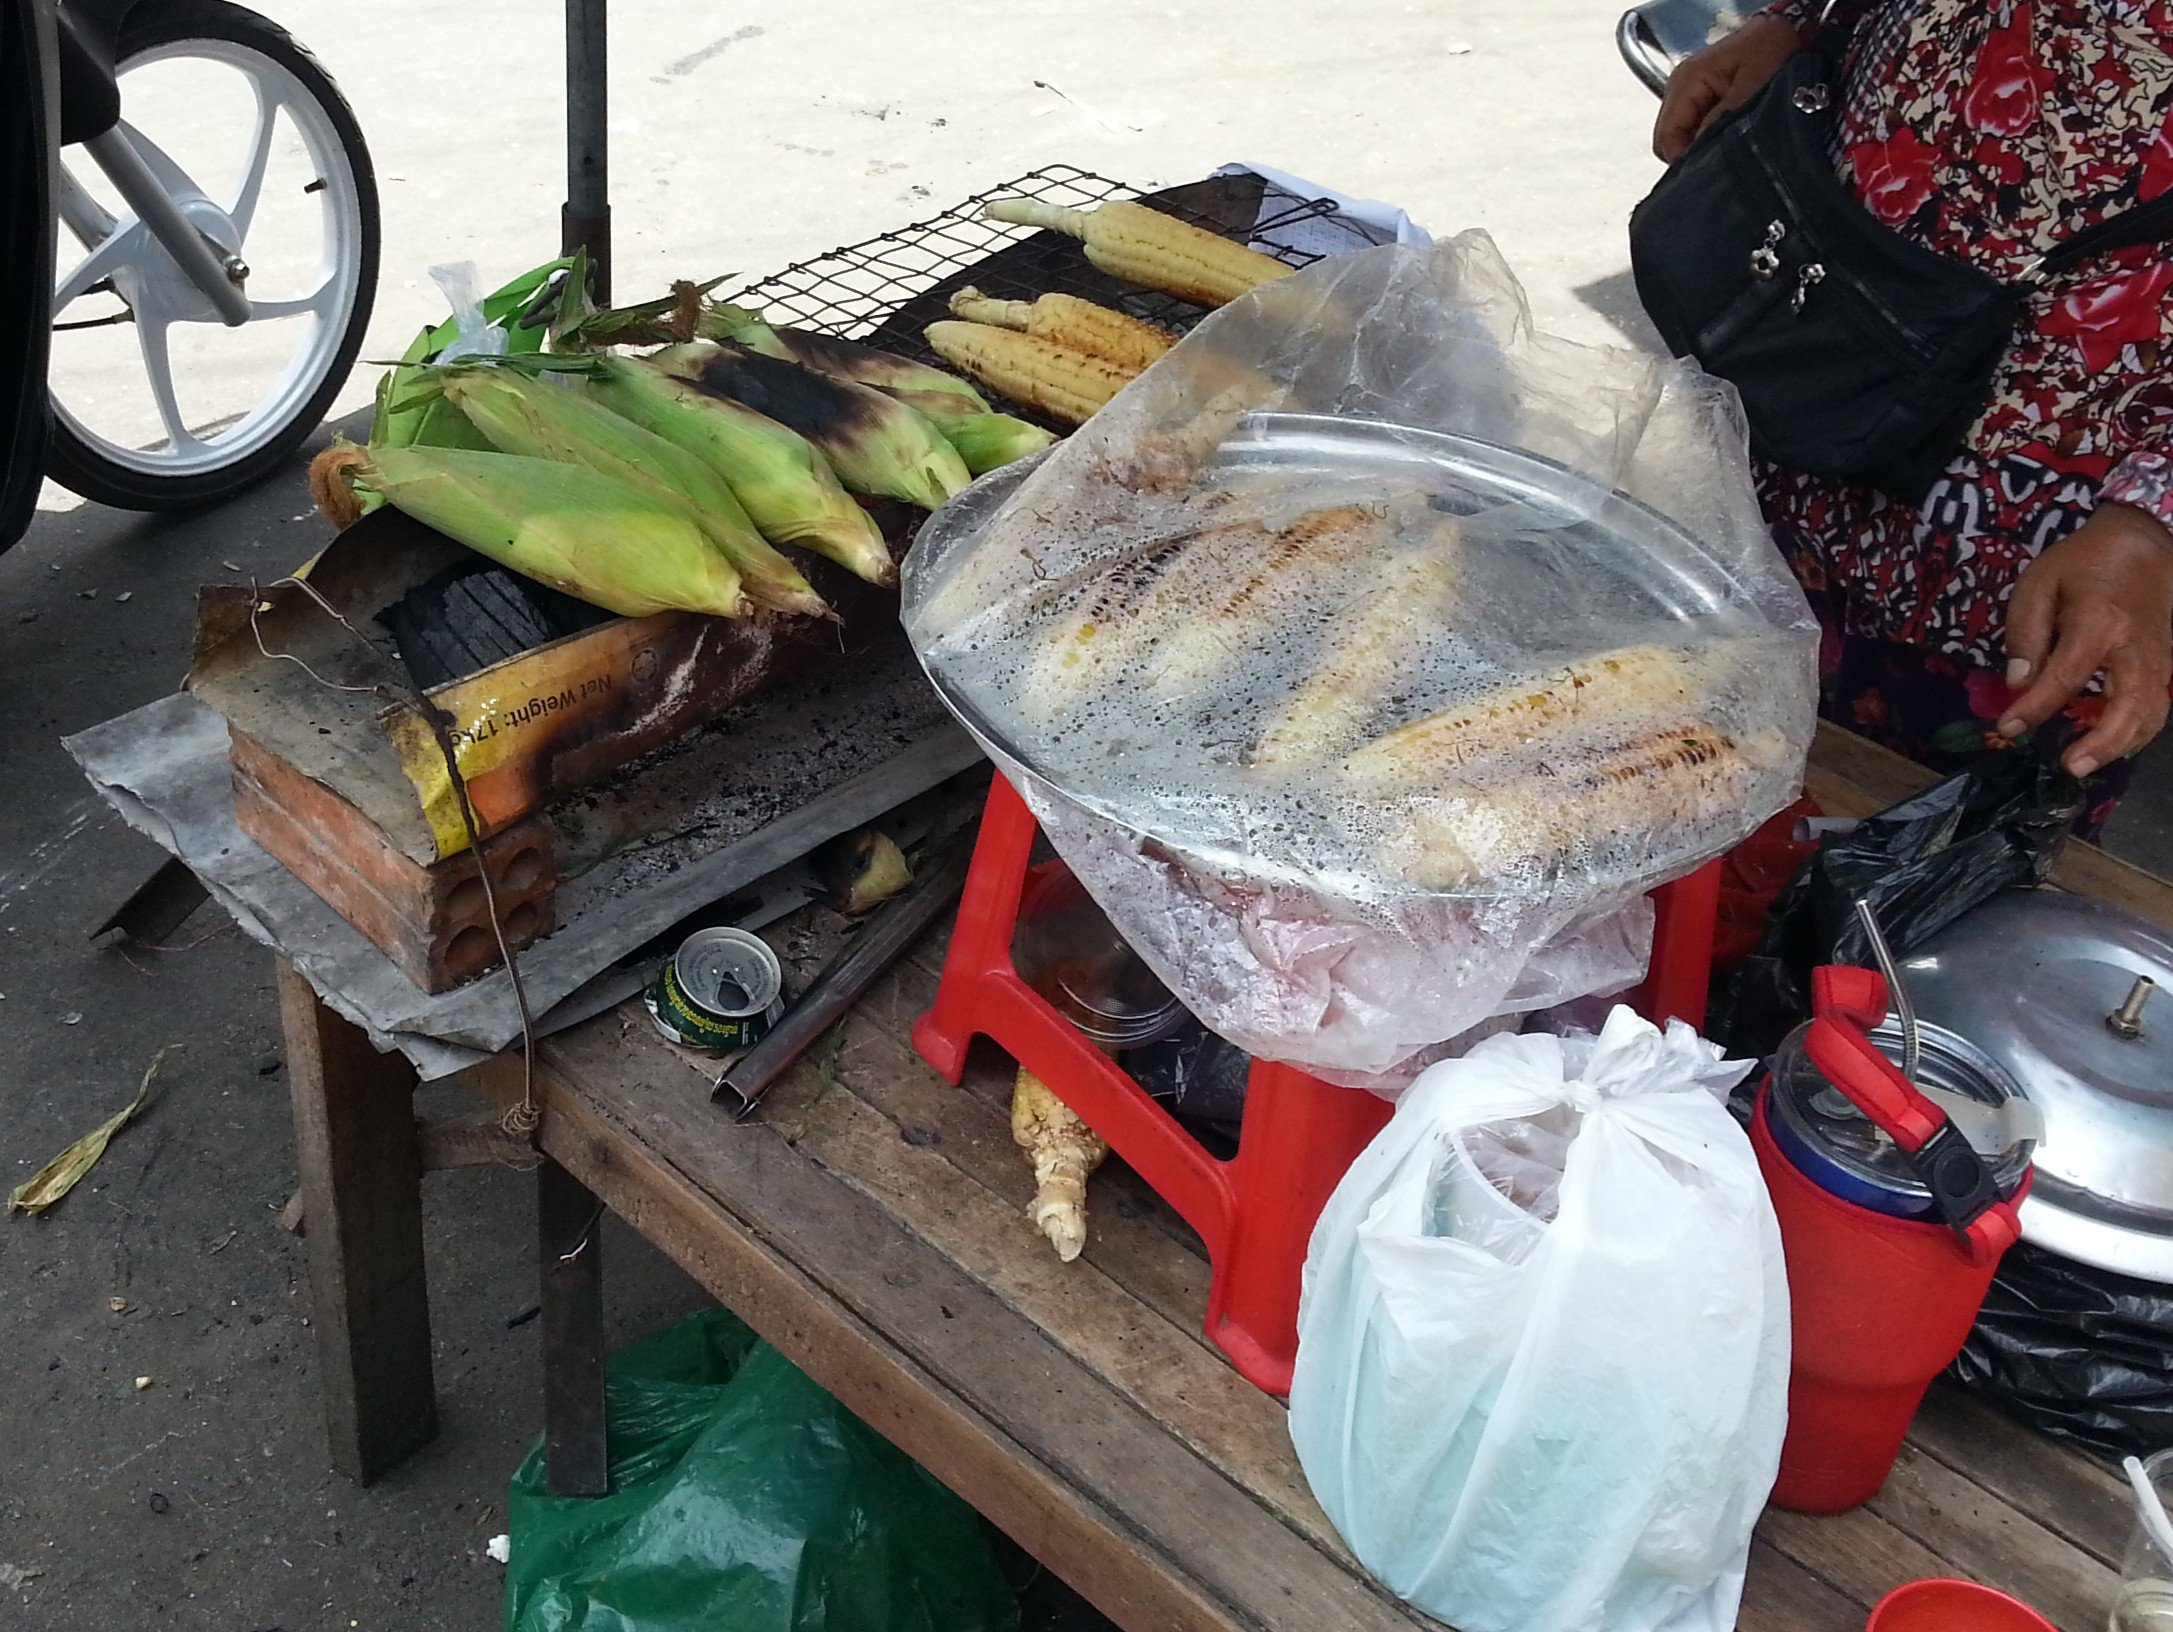 Grilled sweetcorn are popular throughout South East Asia